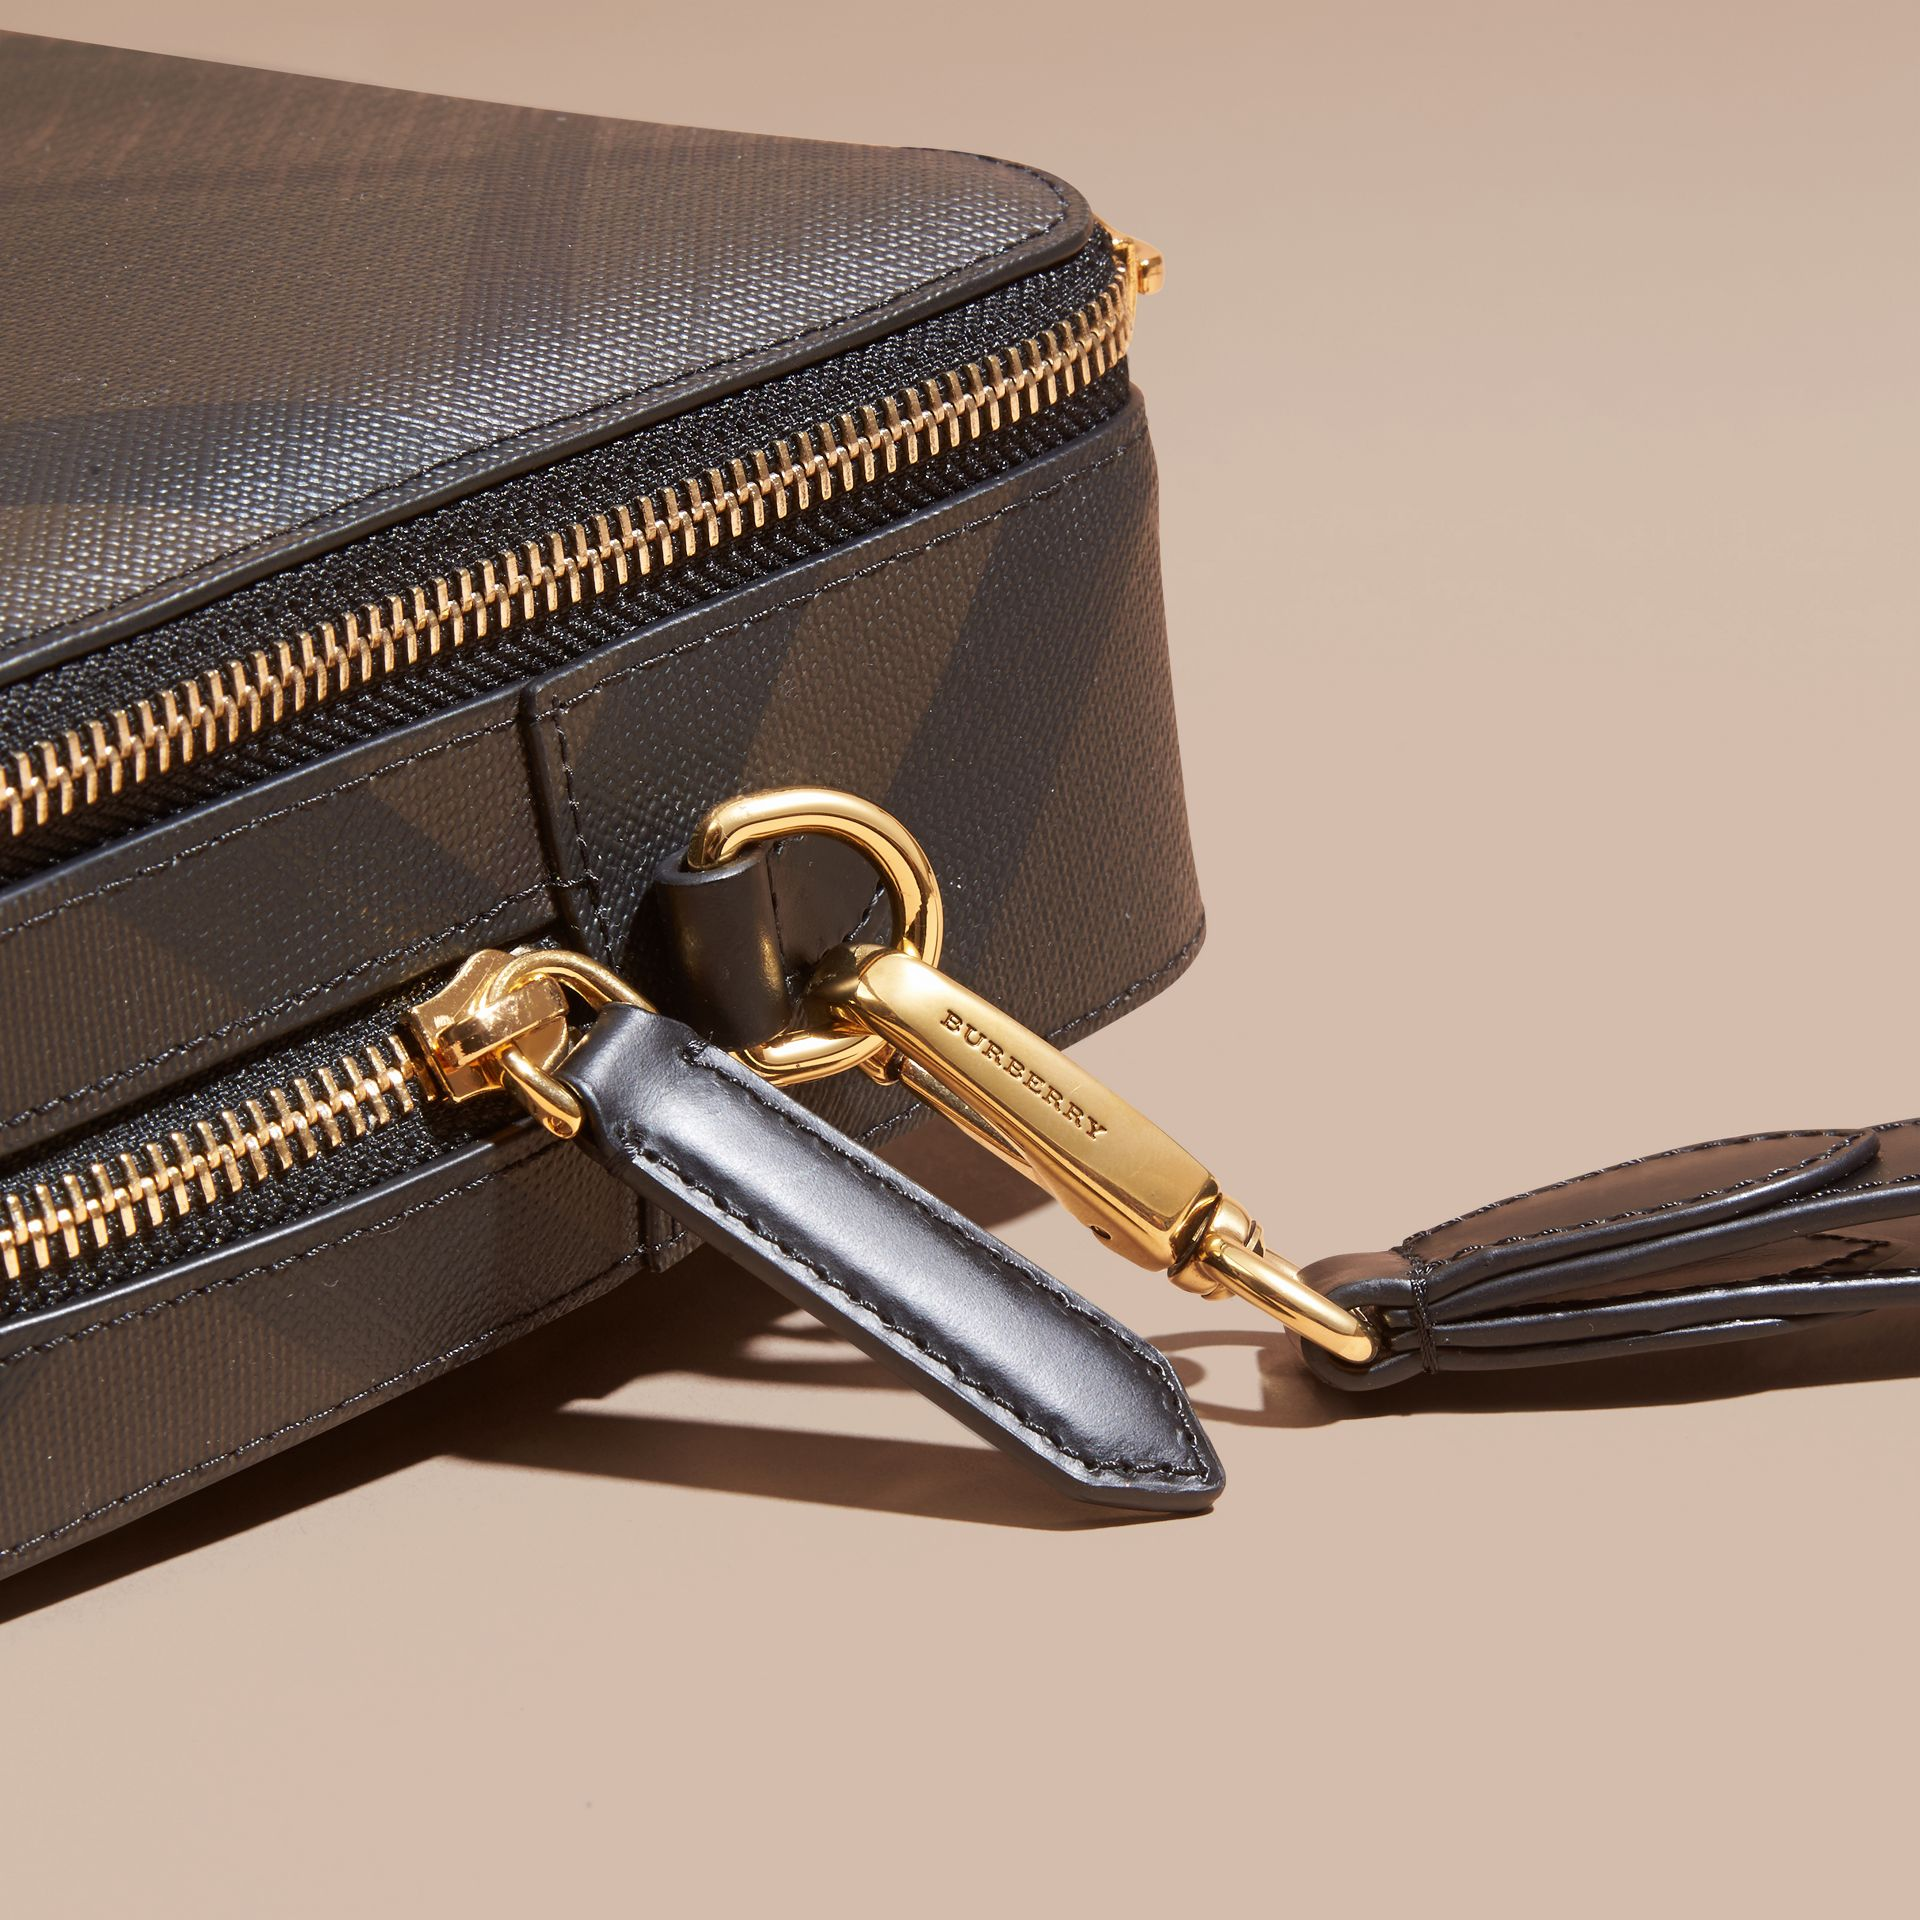 Leather-trimmed London Check Pouch in Chocolate/black - Men | Burberry - gallery image 2